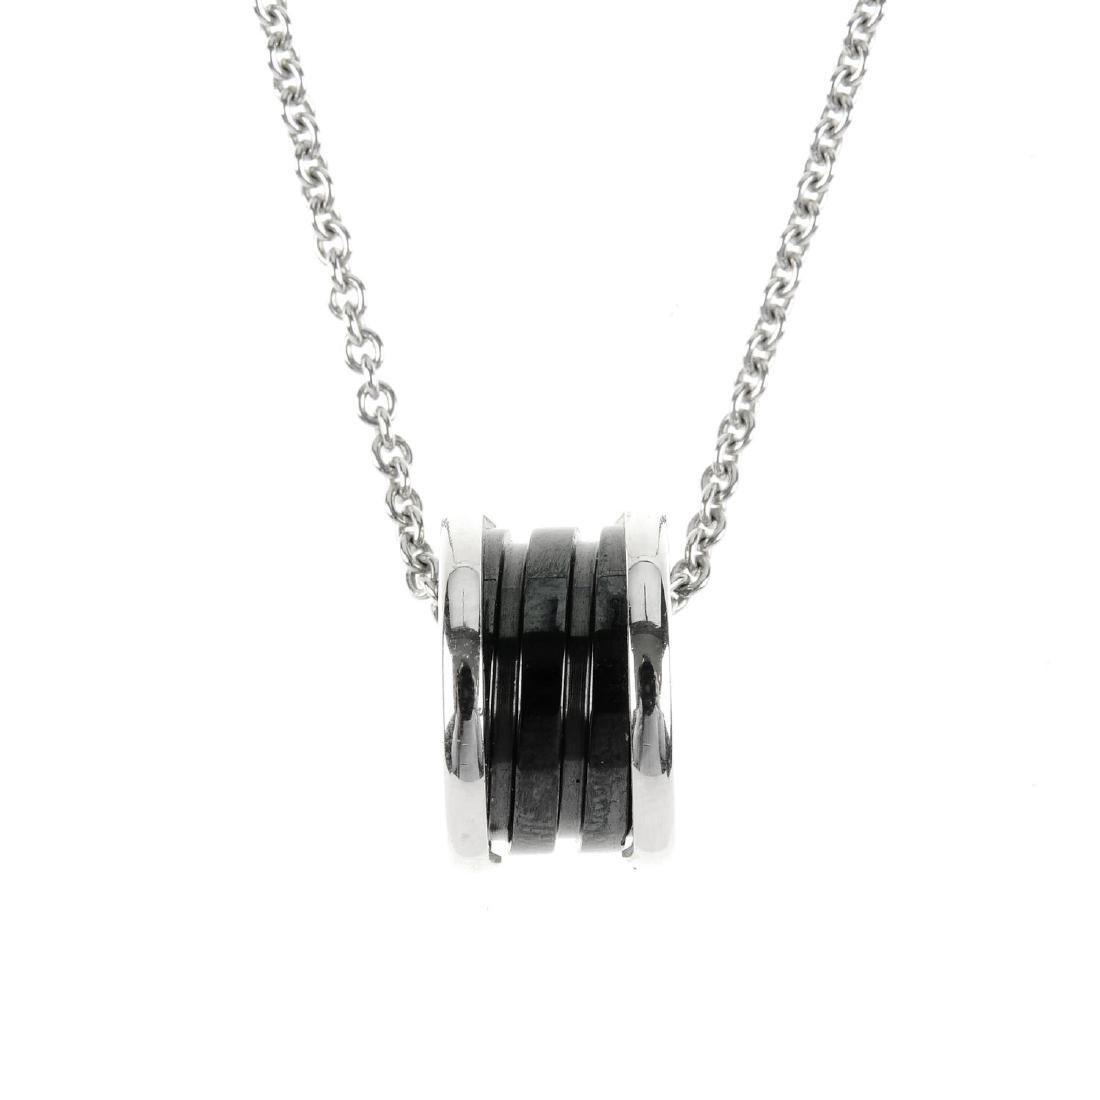 BULGARI - a pendant necklace. Designed for Save the